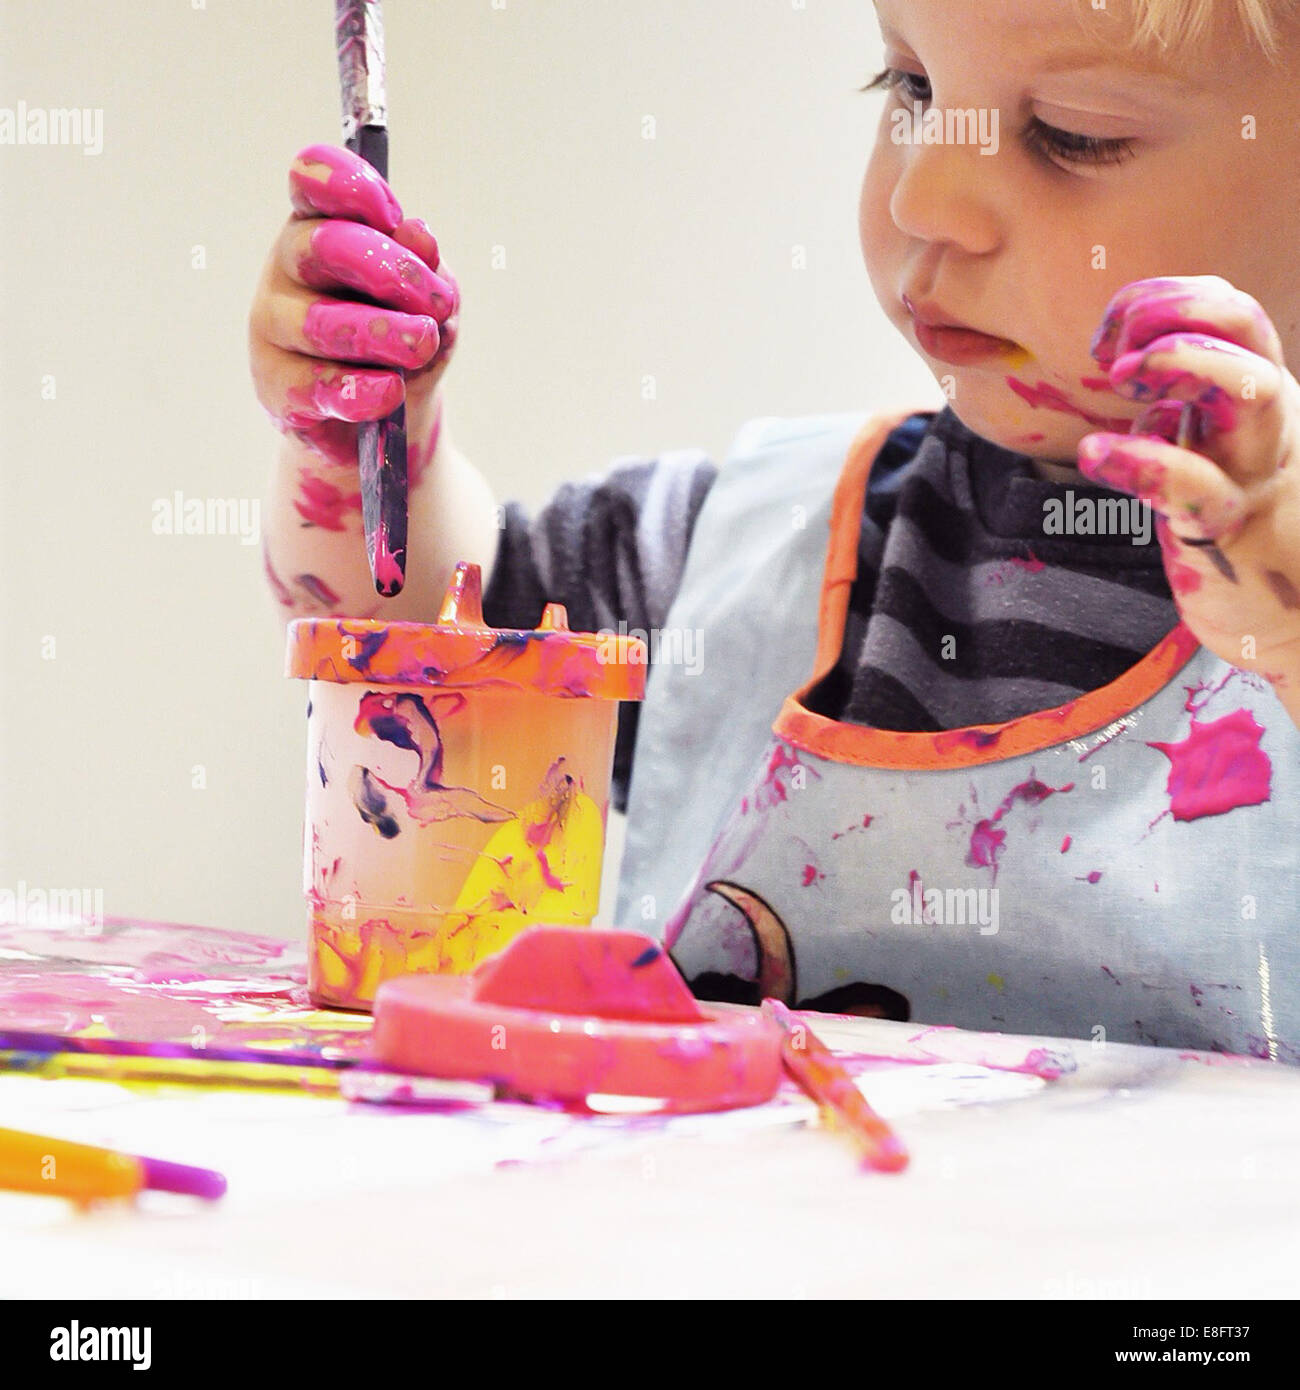 Boy making a mess while painting - Stock Image